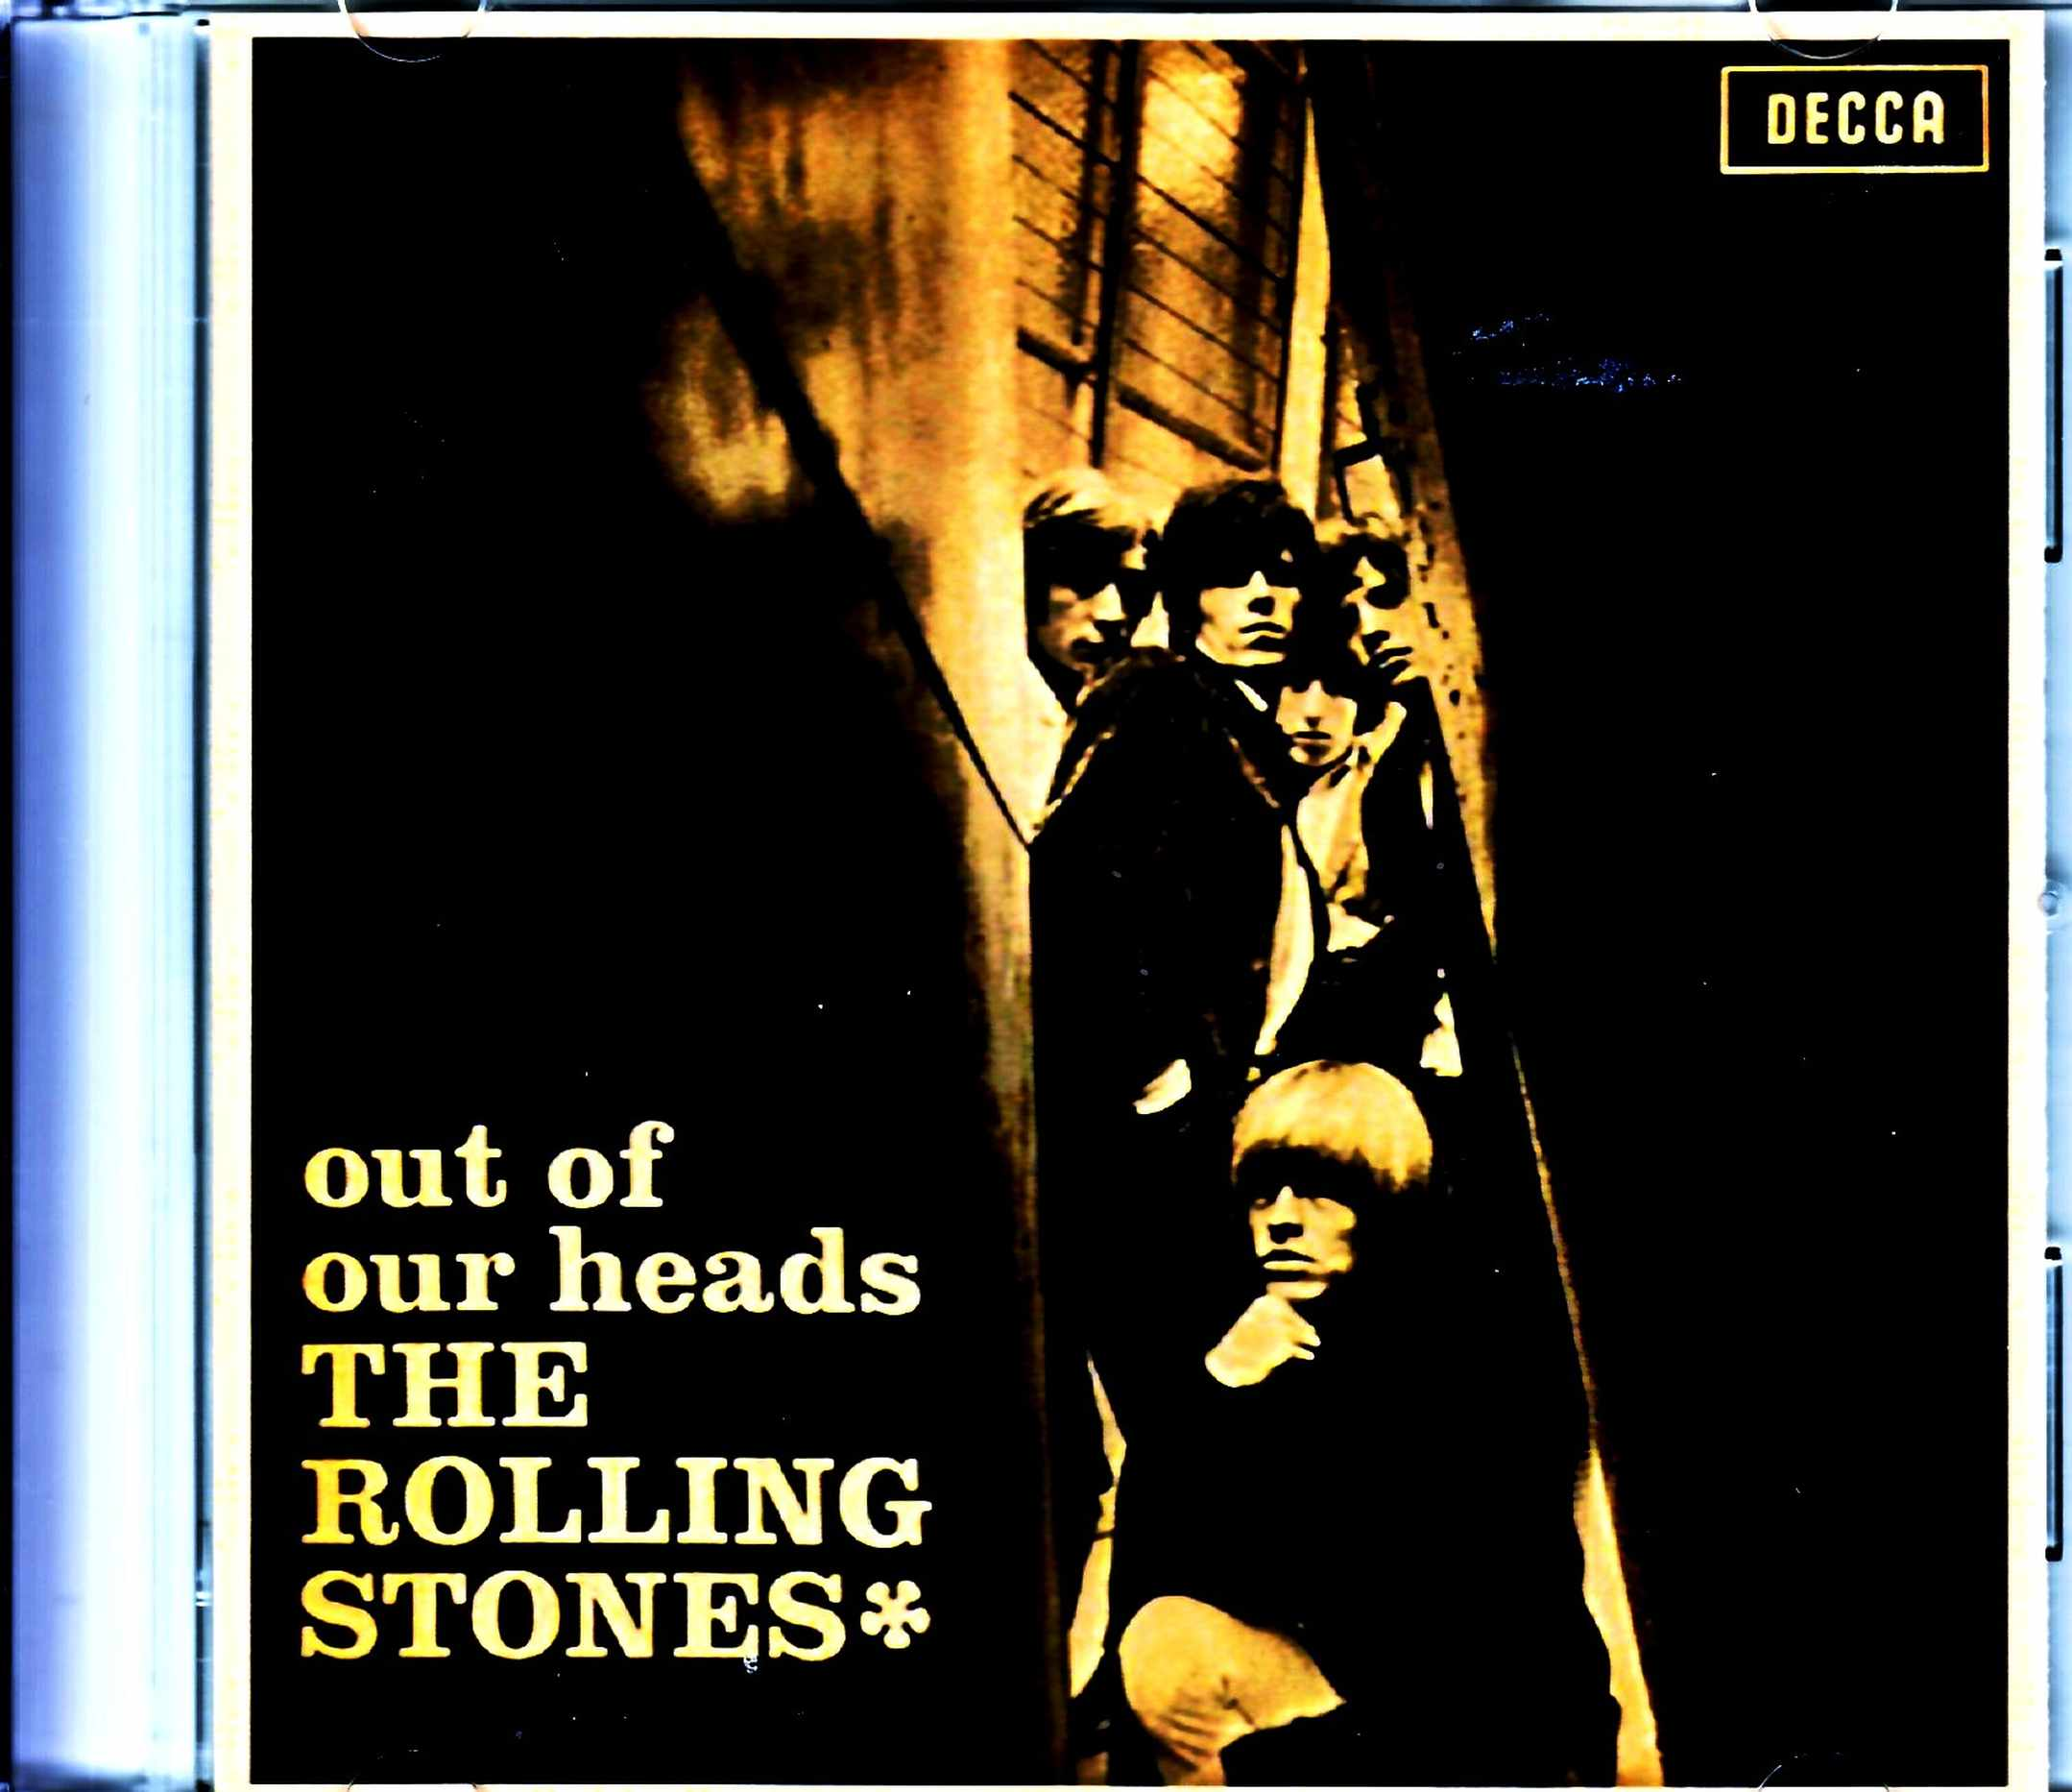 Rolling Stones ローリング・ストーンズ/アウト・オブ・アワー・ヘッズ Out of Our Heads Original UK LP